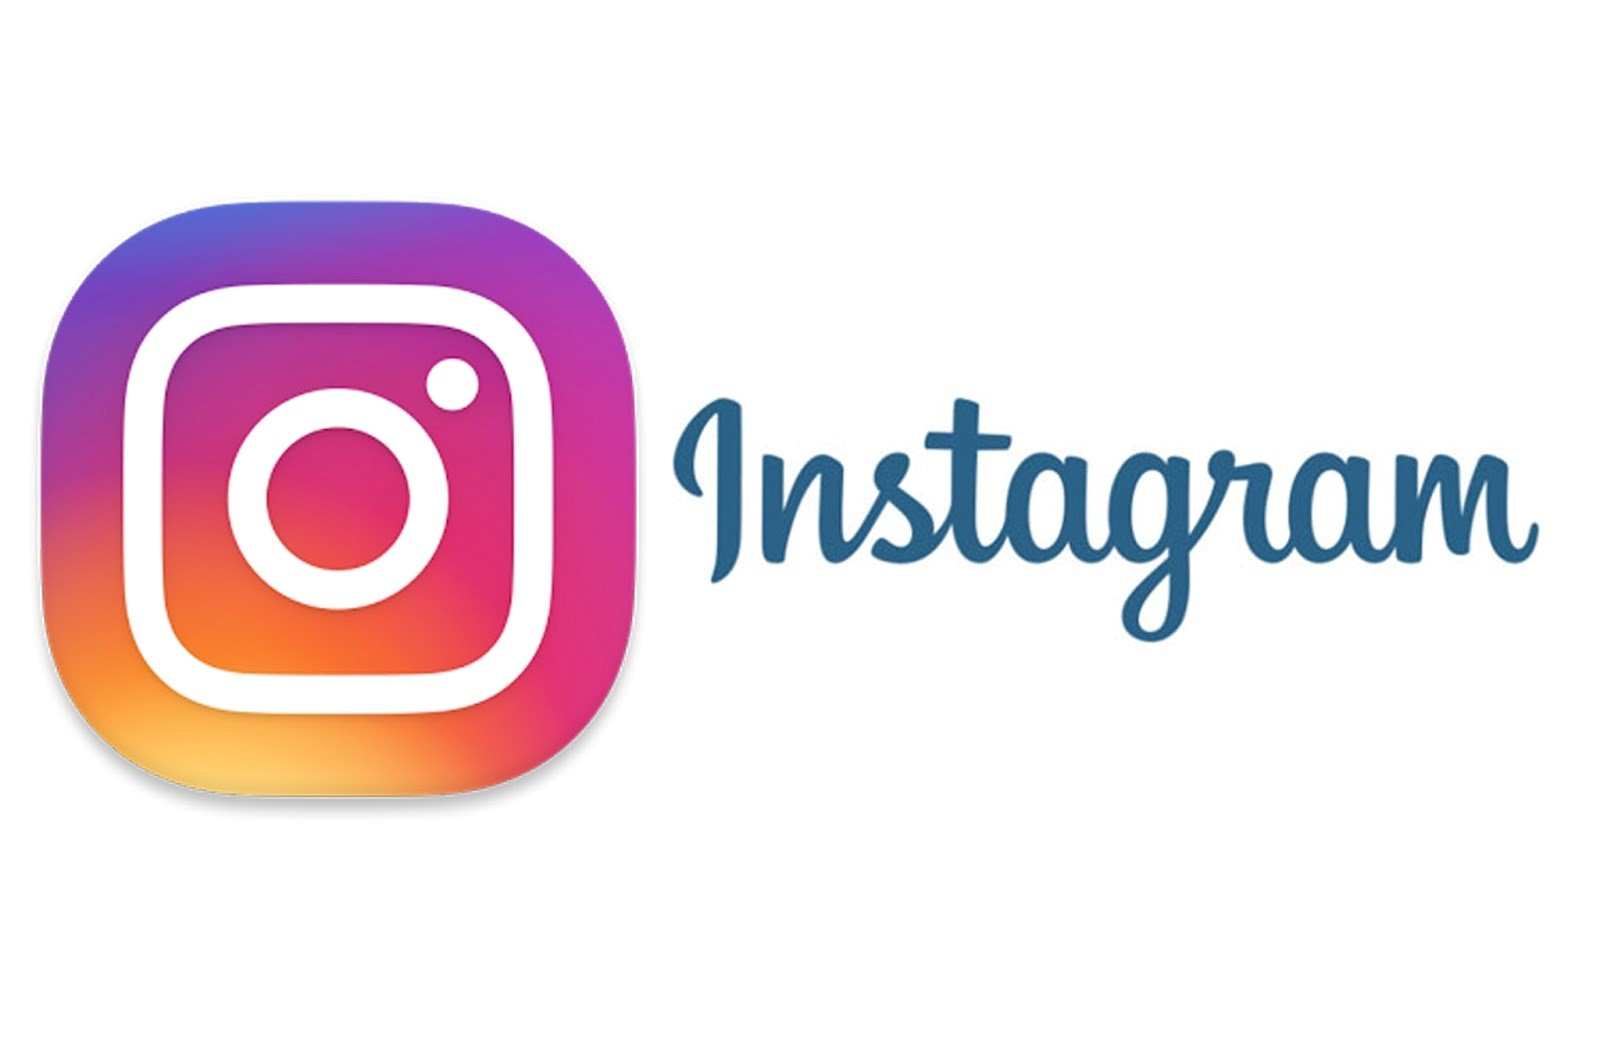 Buy 100.000 Instagram Followers: Pros and Cons